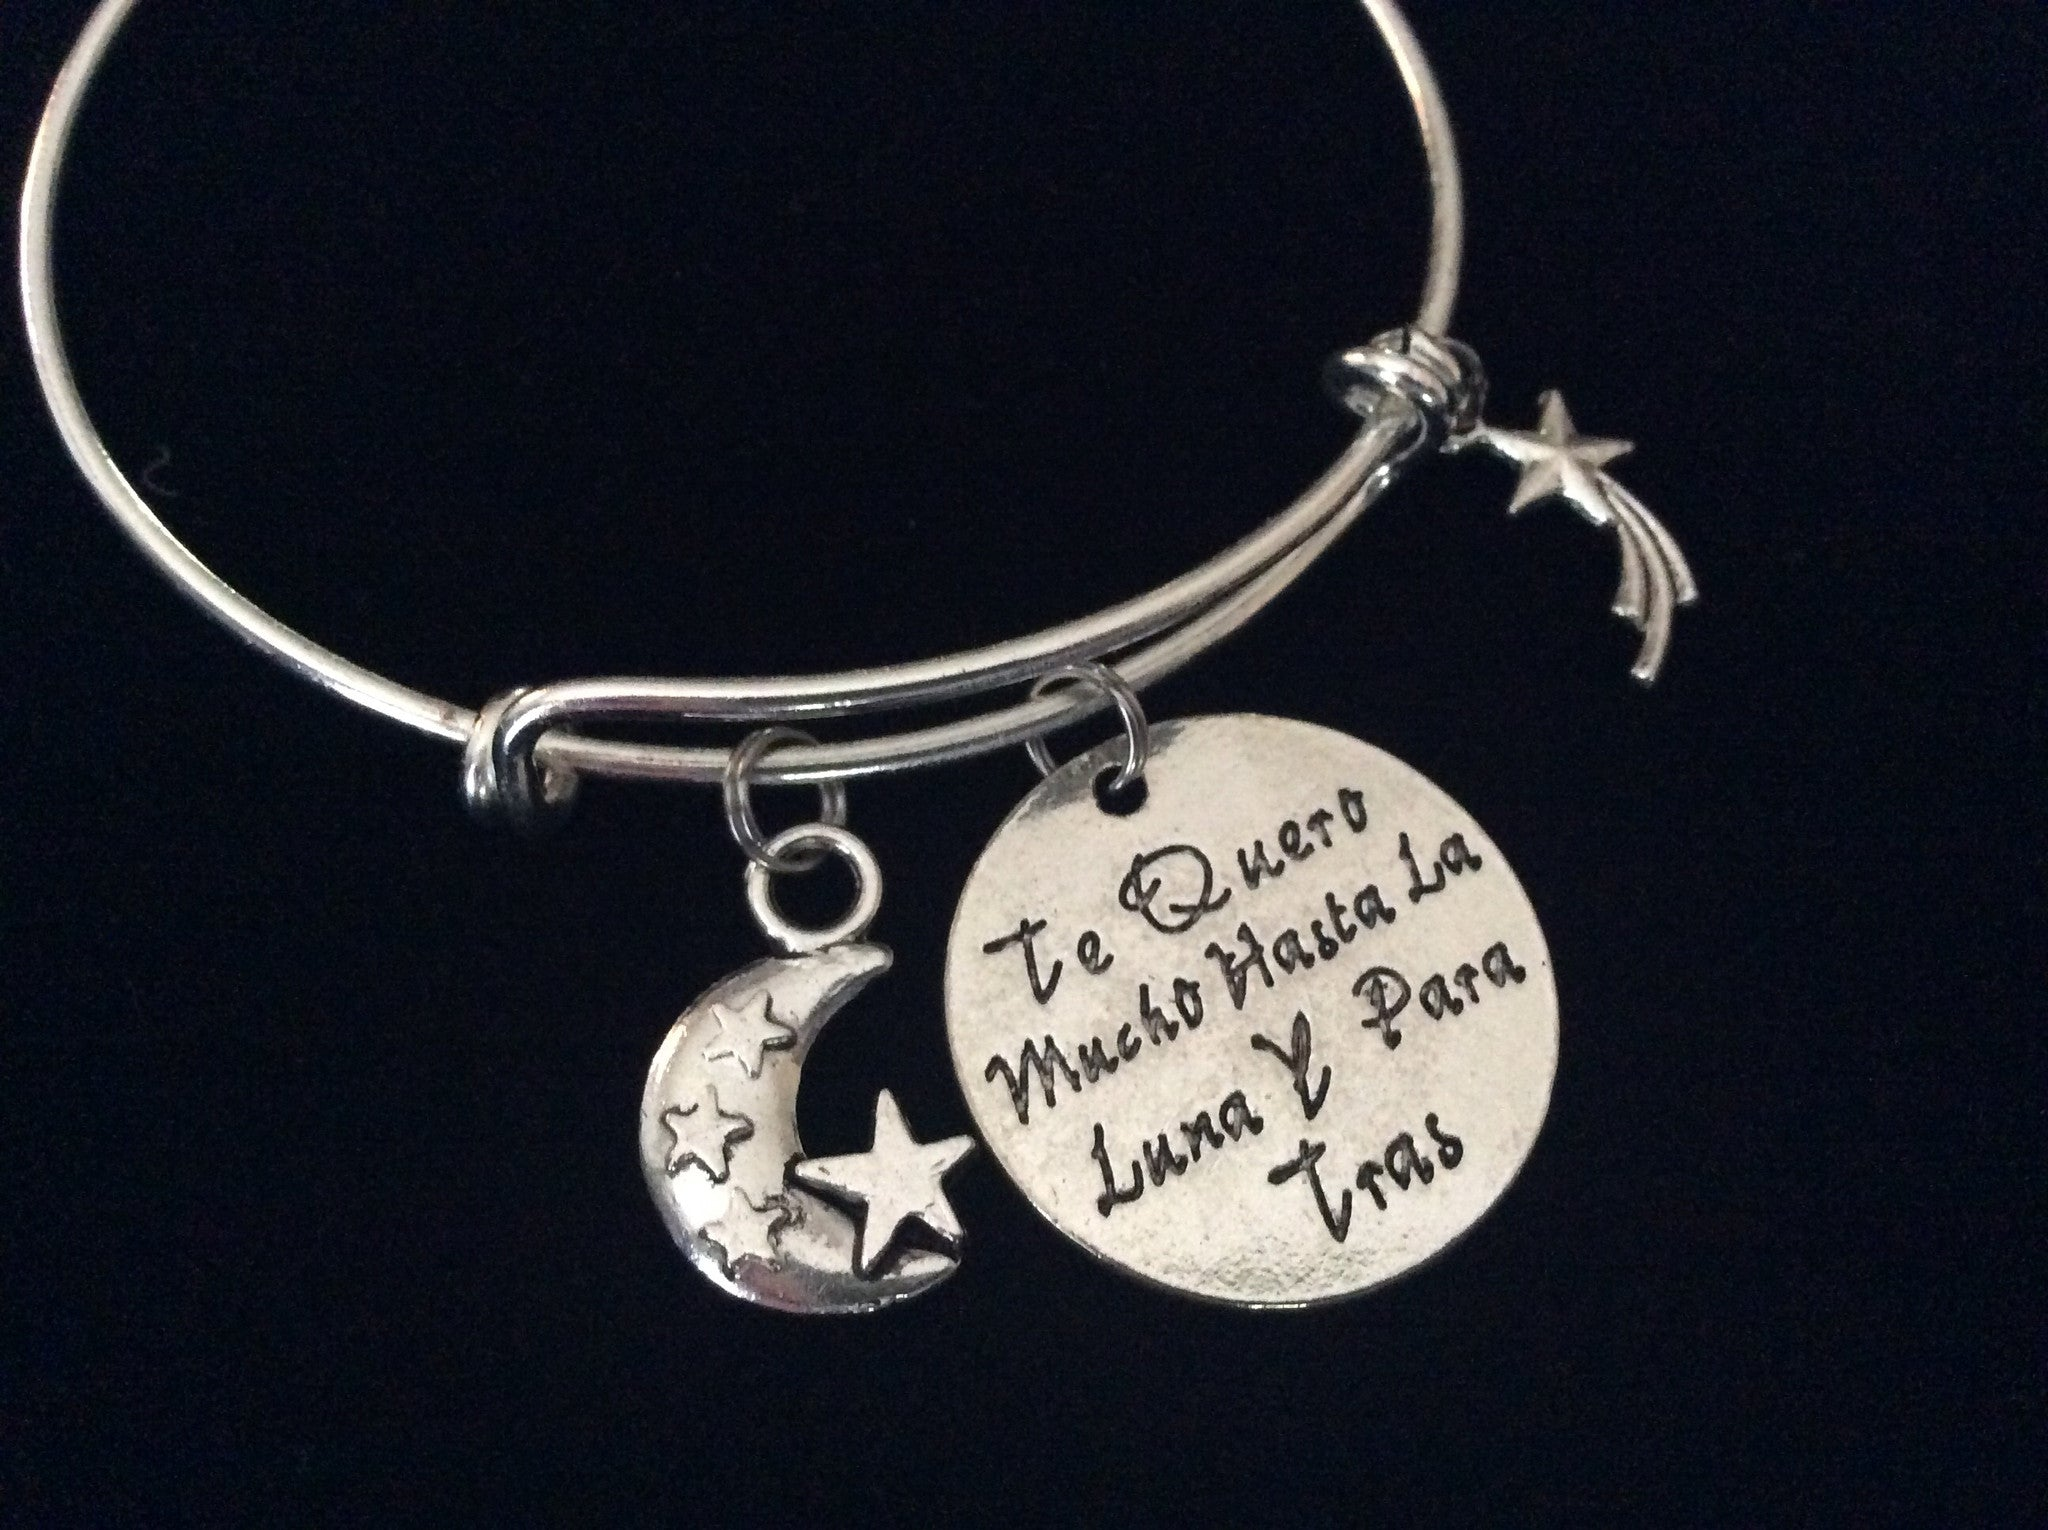 spanish bracelet translates to i love you to the moon and back with